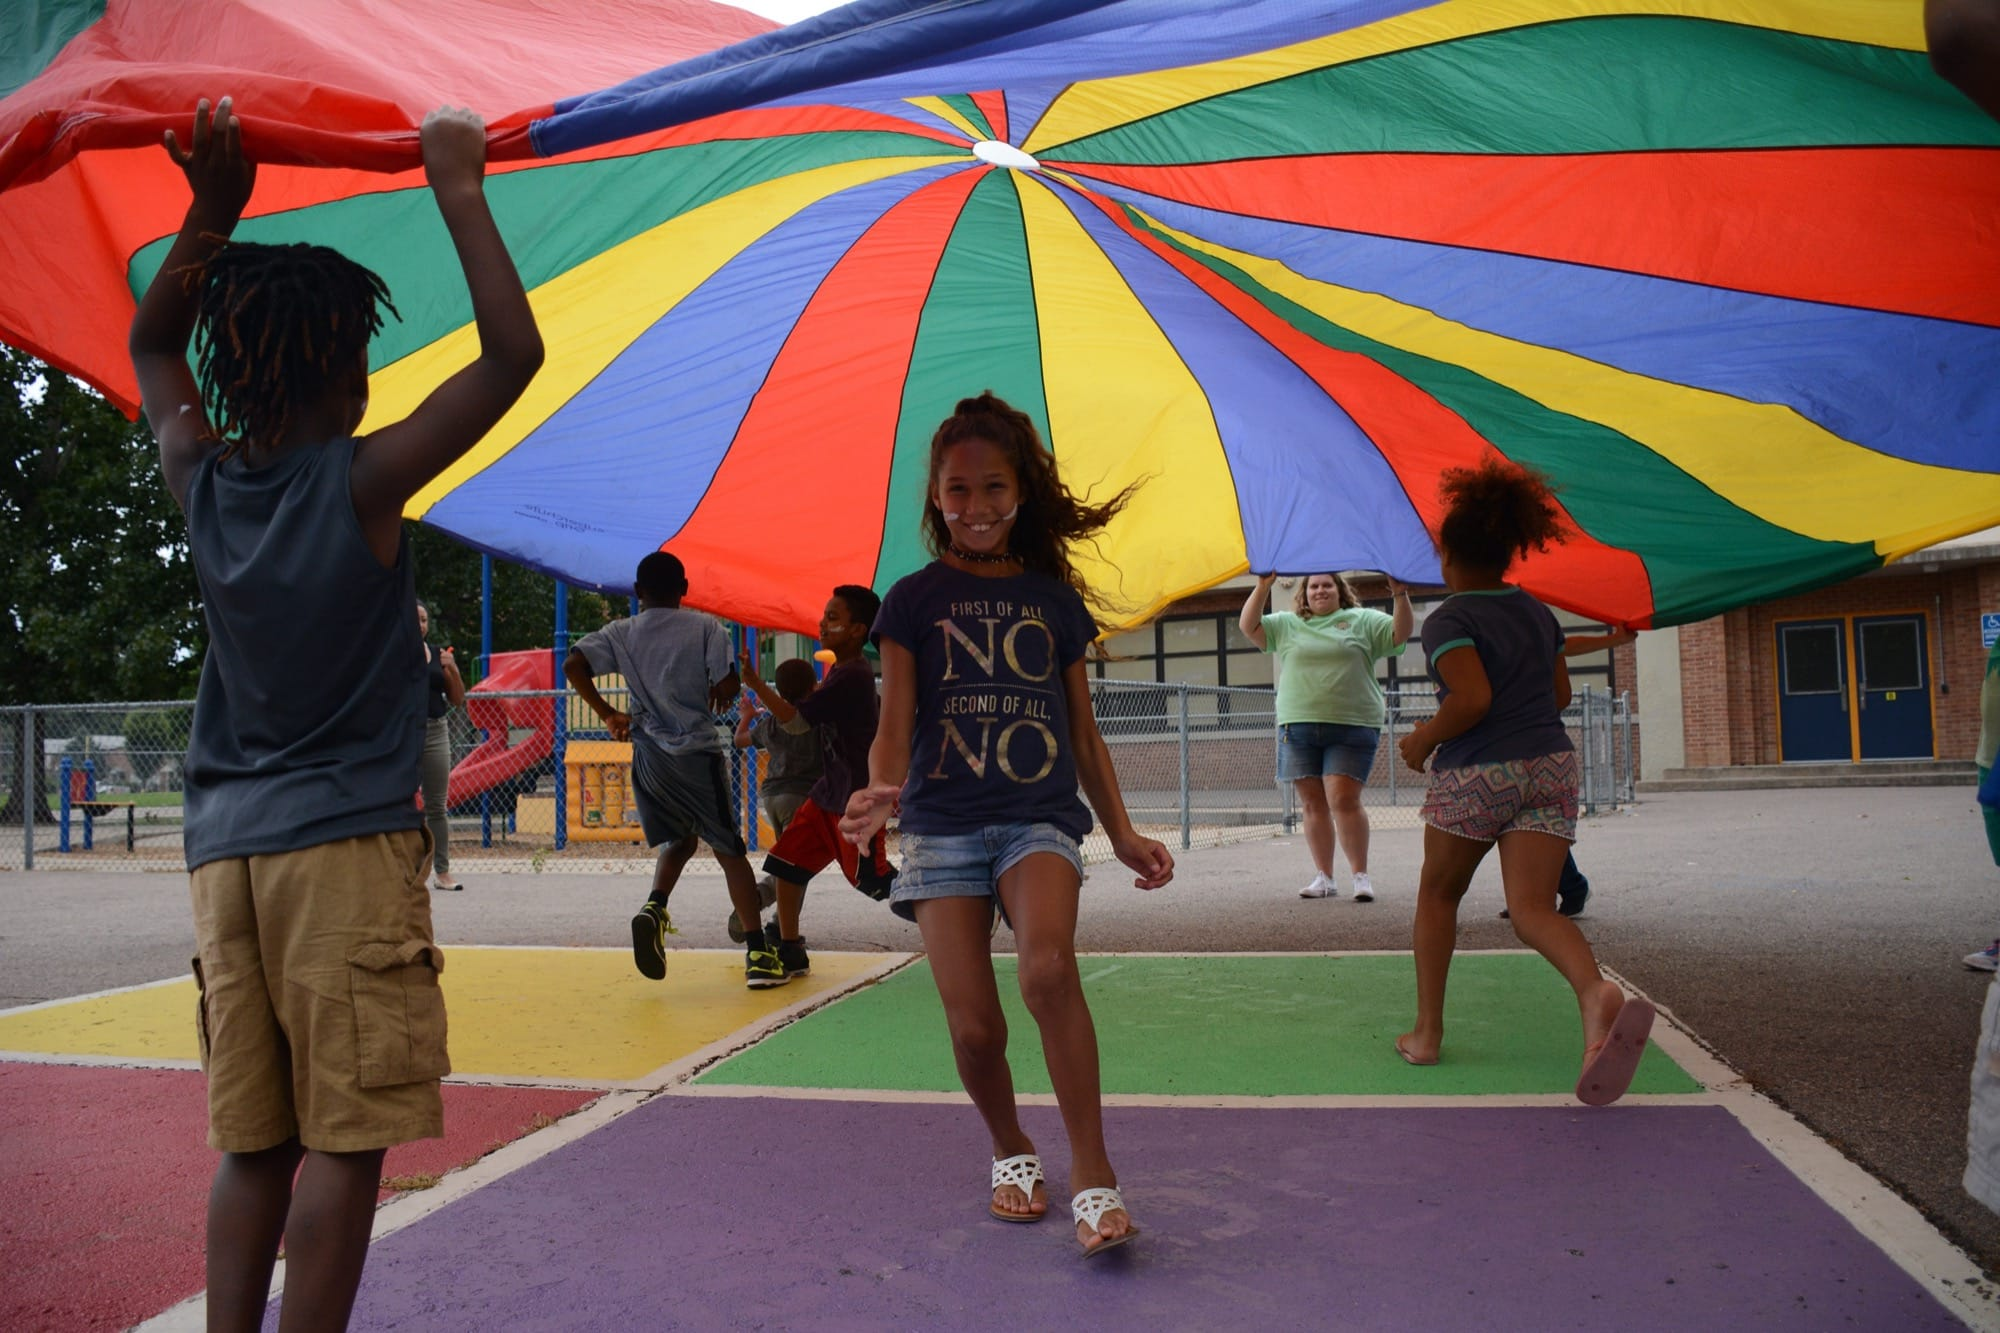 Student smiling at the camera, standing underneath a large rainbow parachute held up by other students